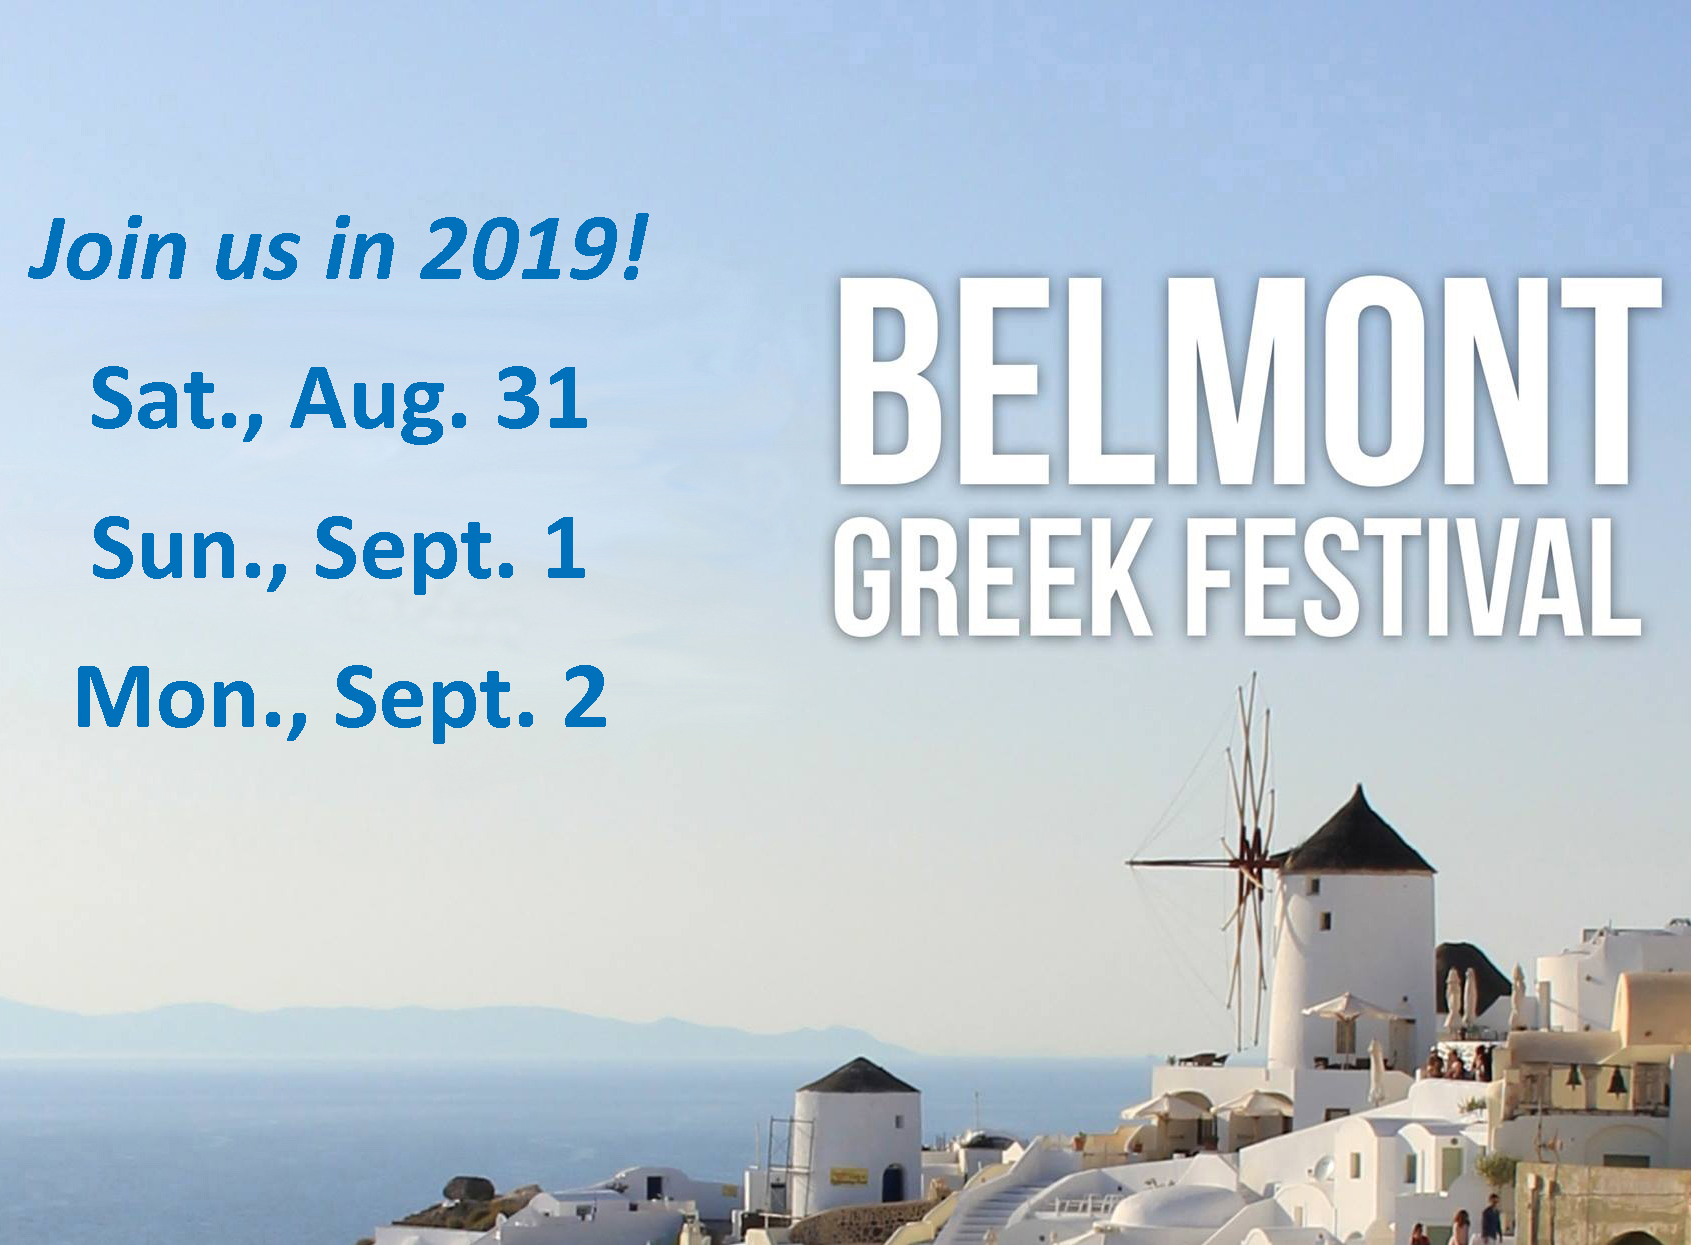 Belmont Greek Festival - August 31 - September 1Greek Orthodox Church of the Holy Cross, BelmontEnjoy Greek food, music, dancing, a mythology play, and a kids' area at the Belmont Greek Festival at the Greek Orthodox Church in Belmont. Children 12 and younger are free.